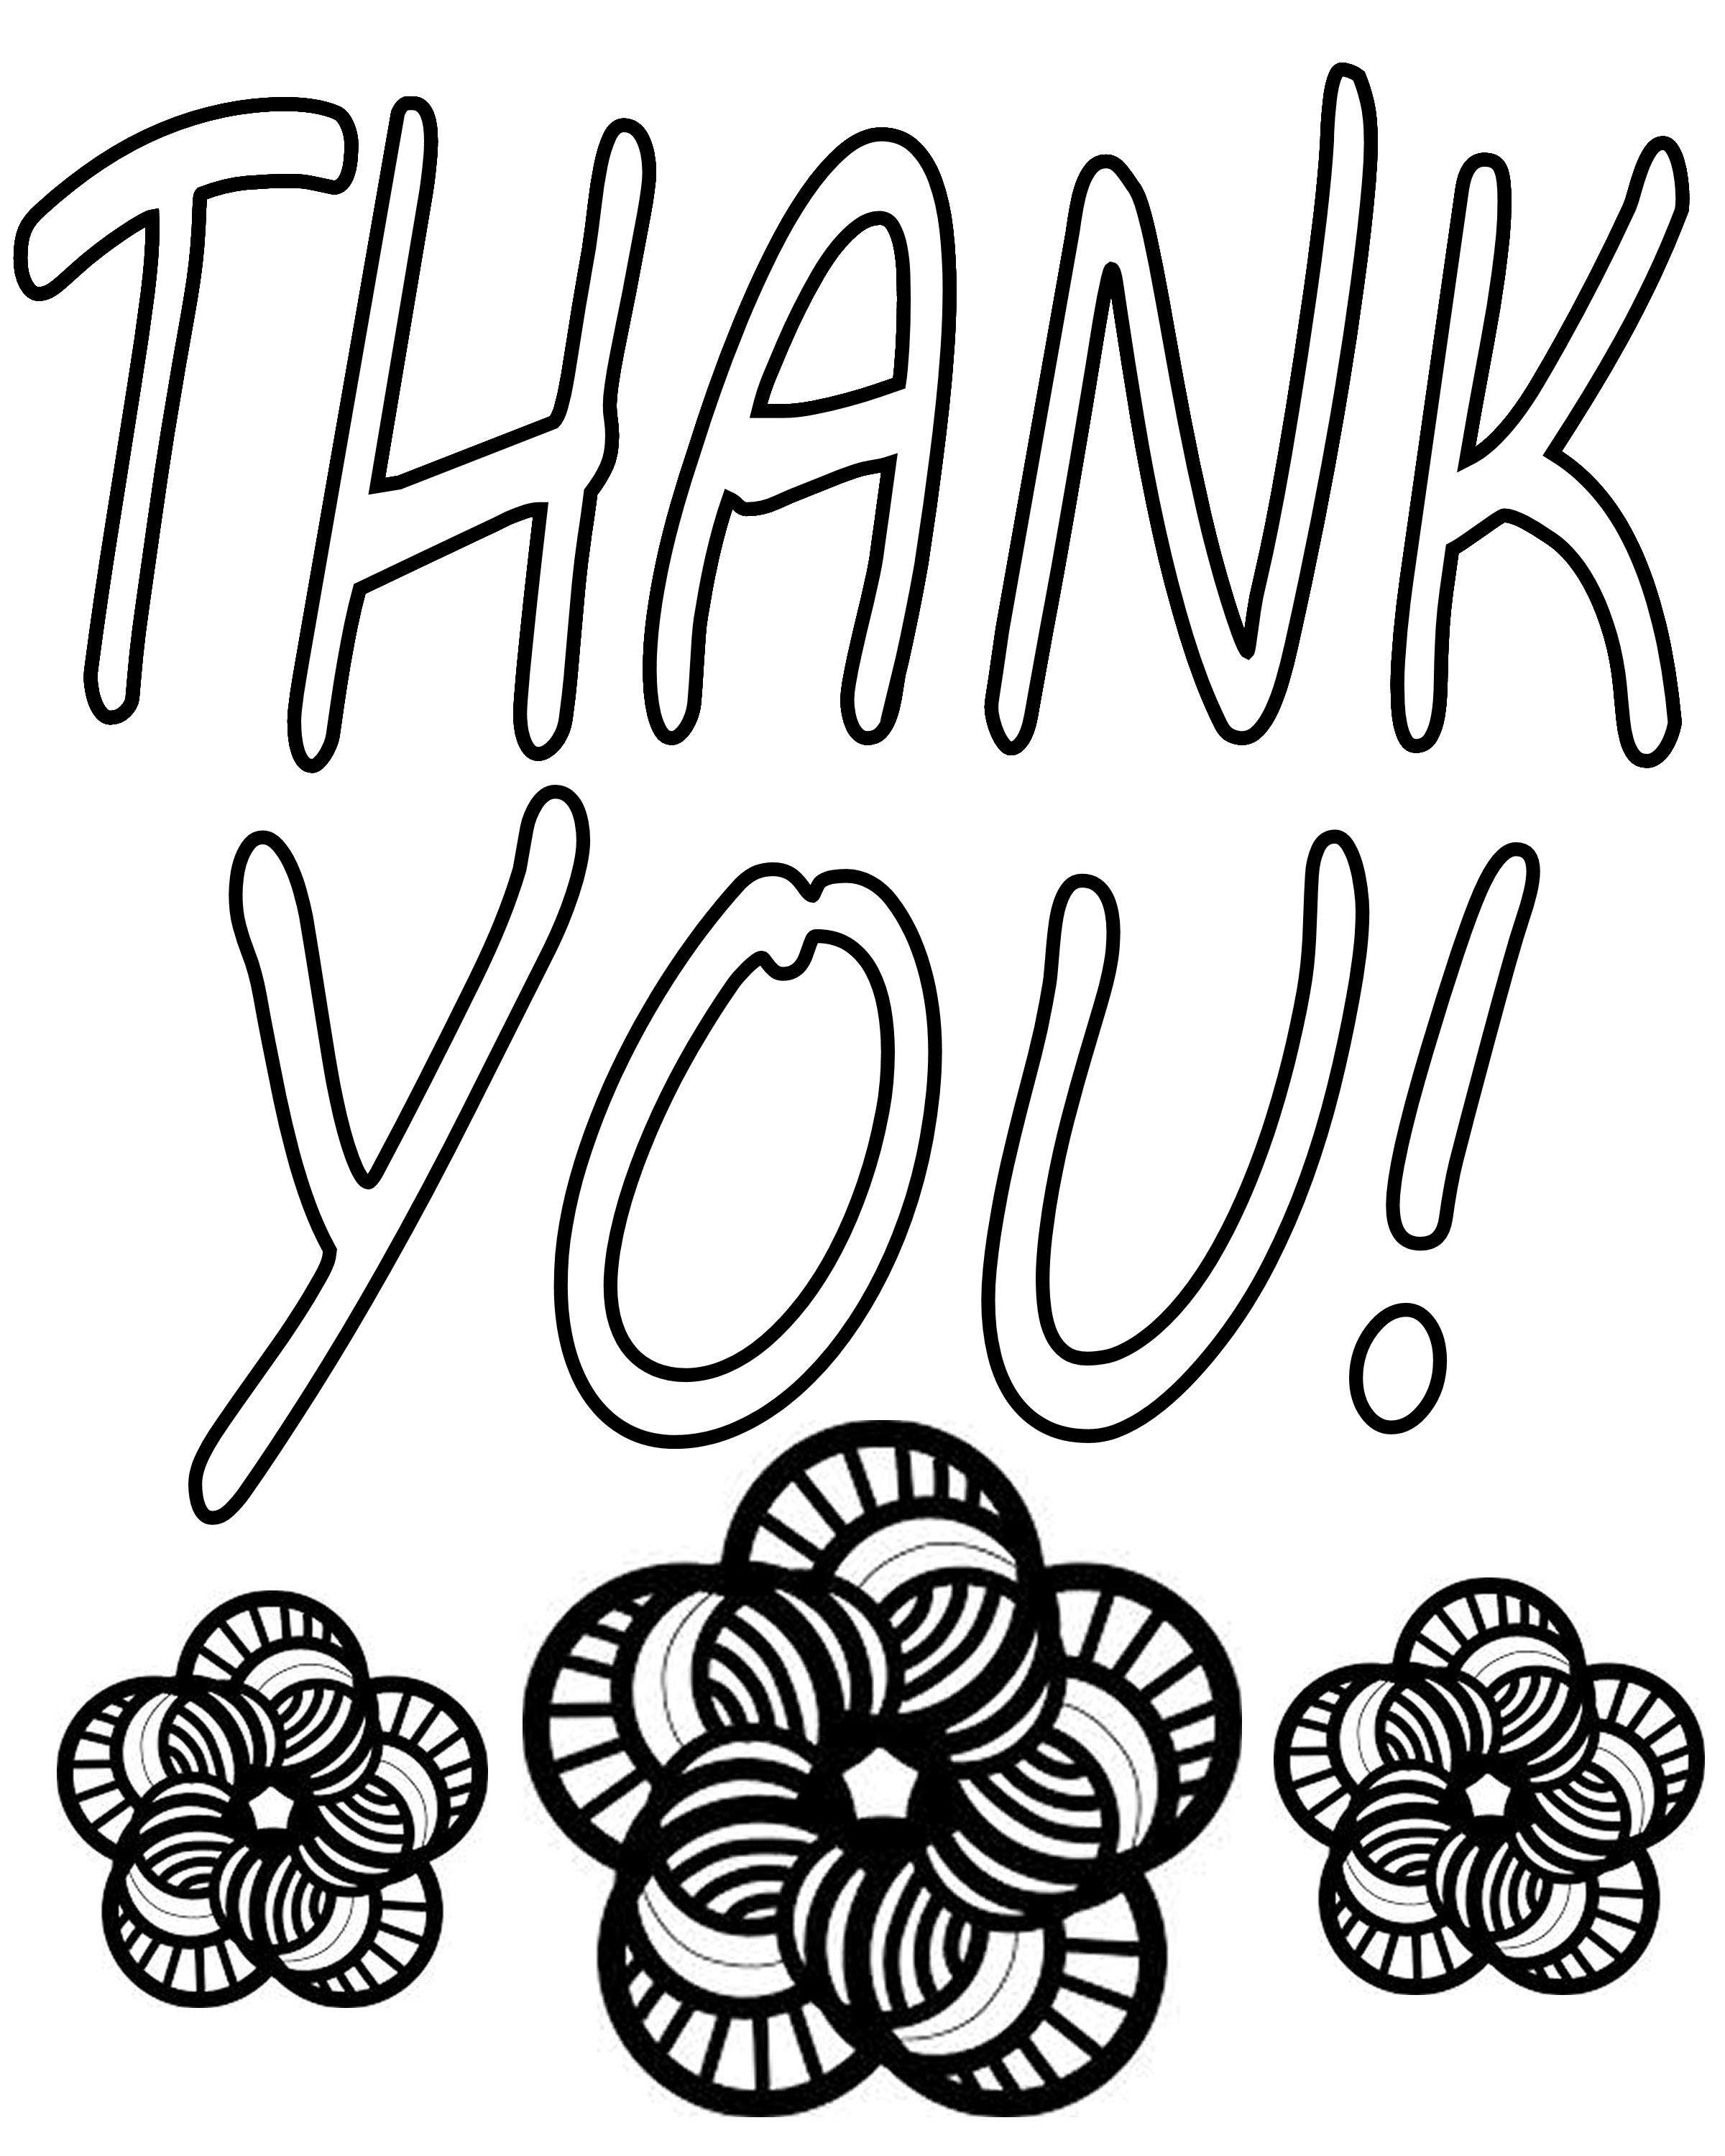 thank you coloring sheets thank you coloring pages free printable coloring pages coloring sheets you thank